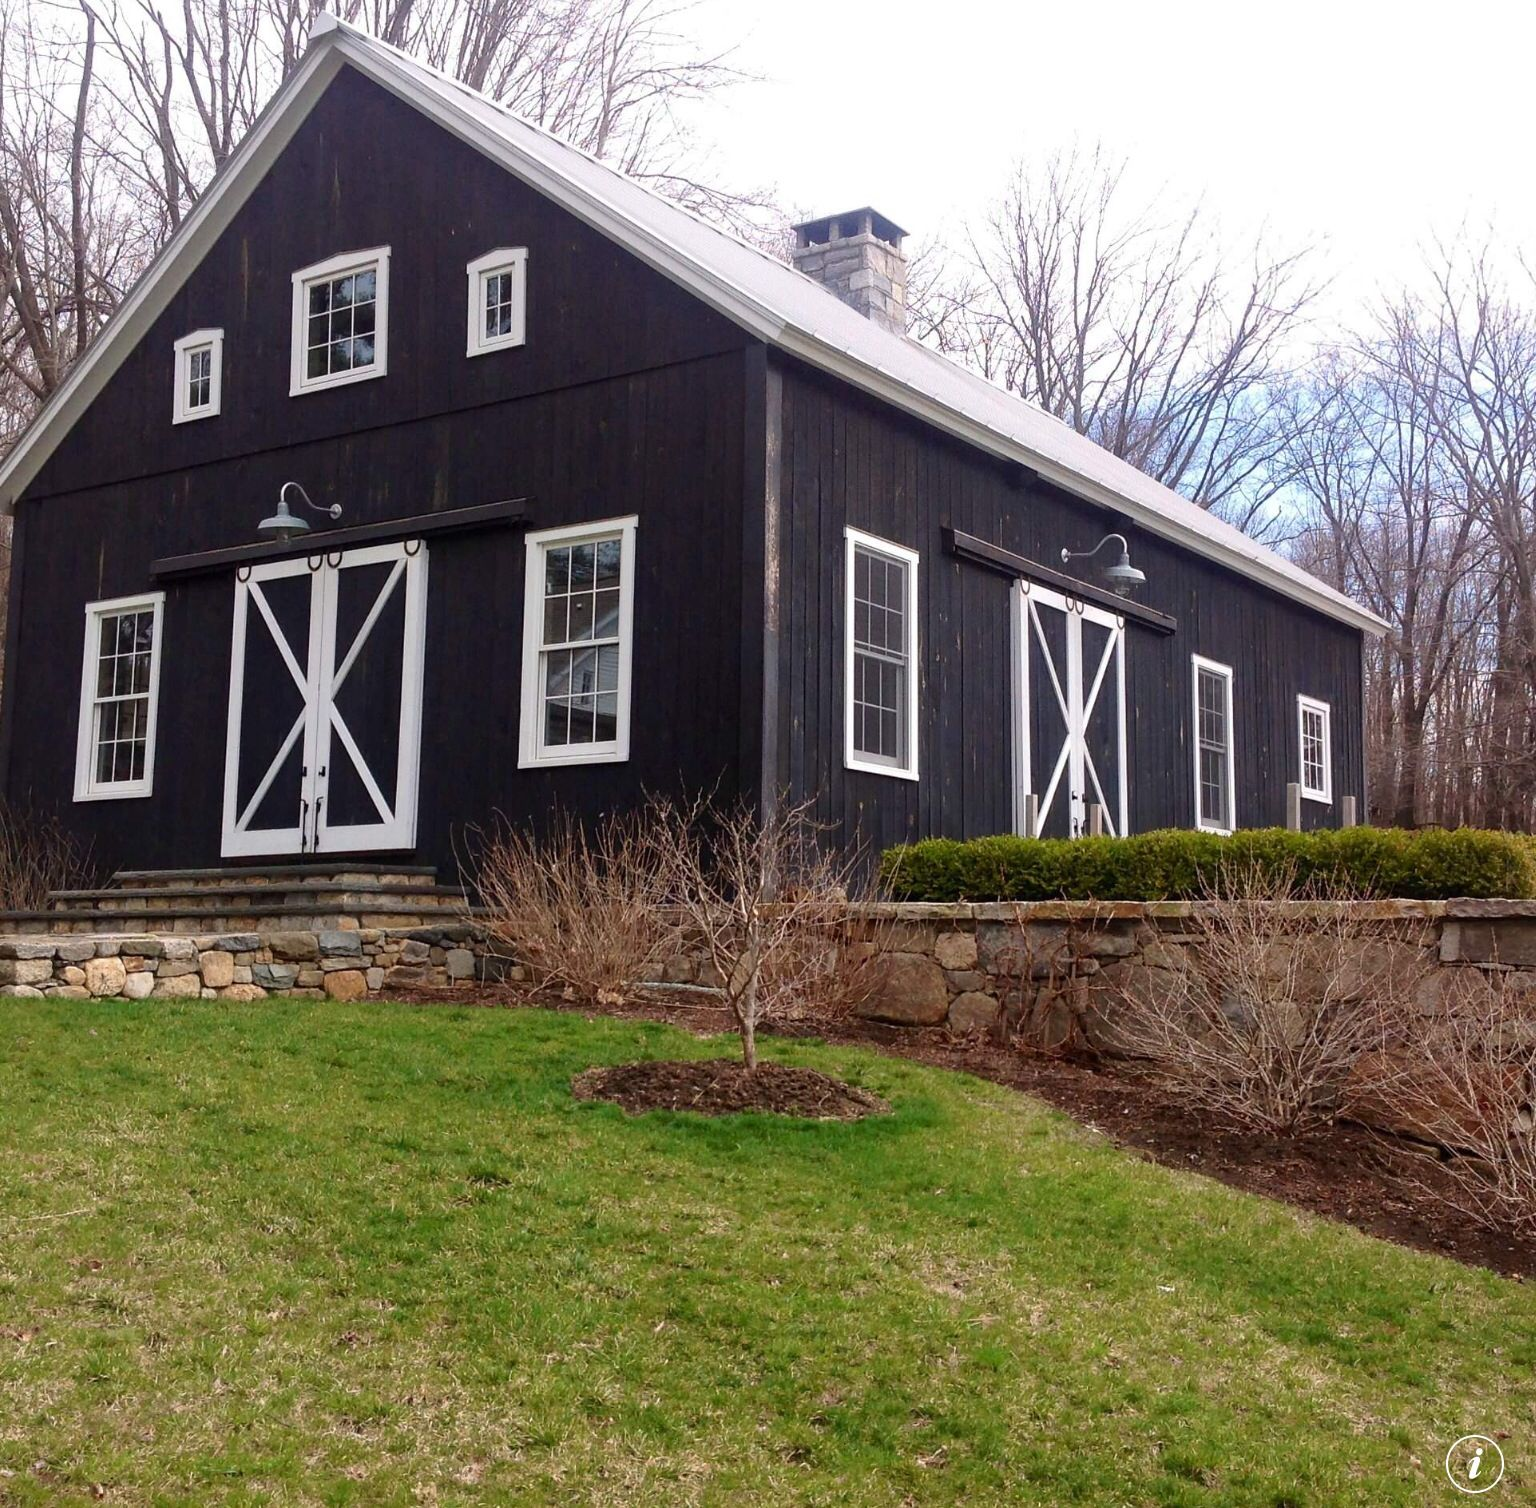 Black Barn White Trim With Field Rock Fence White